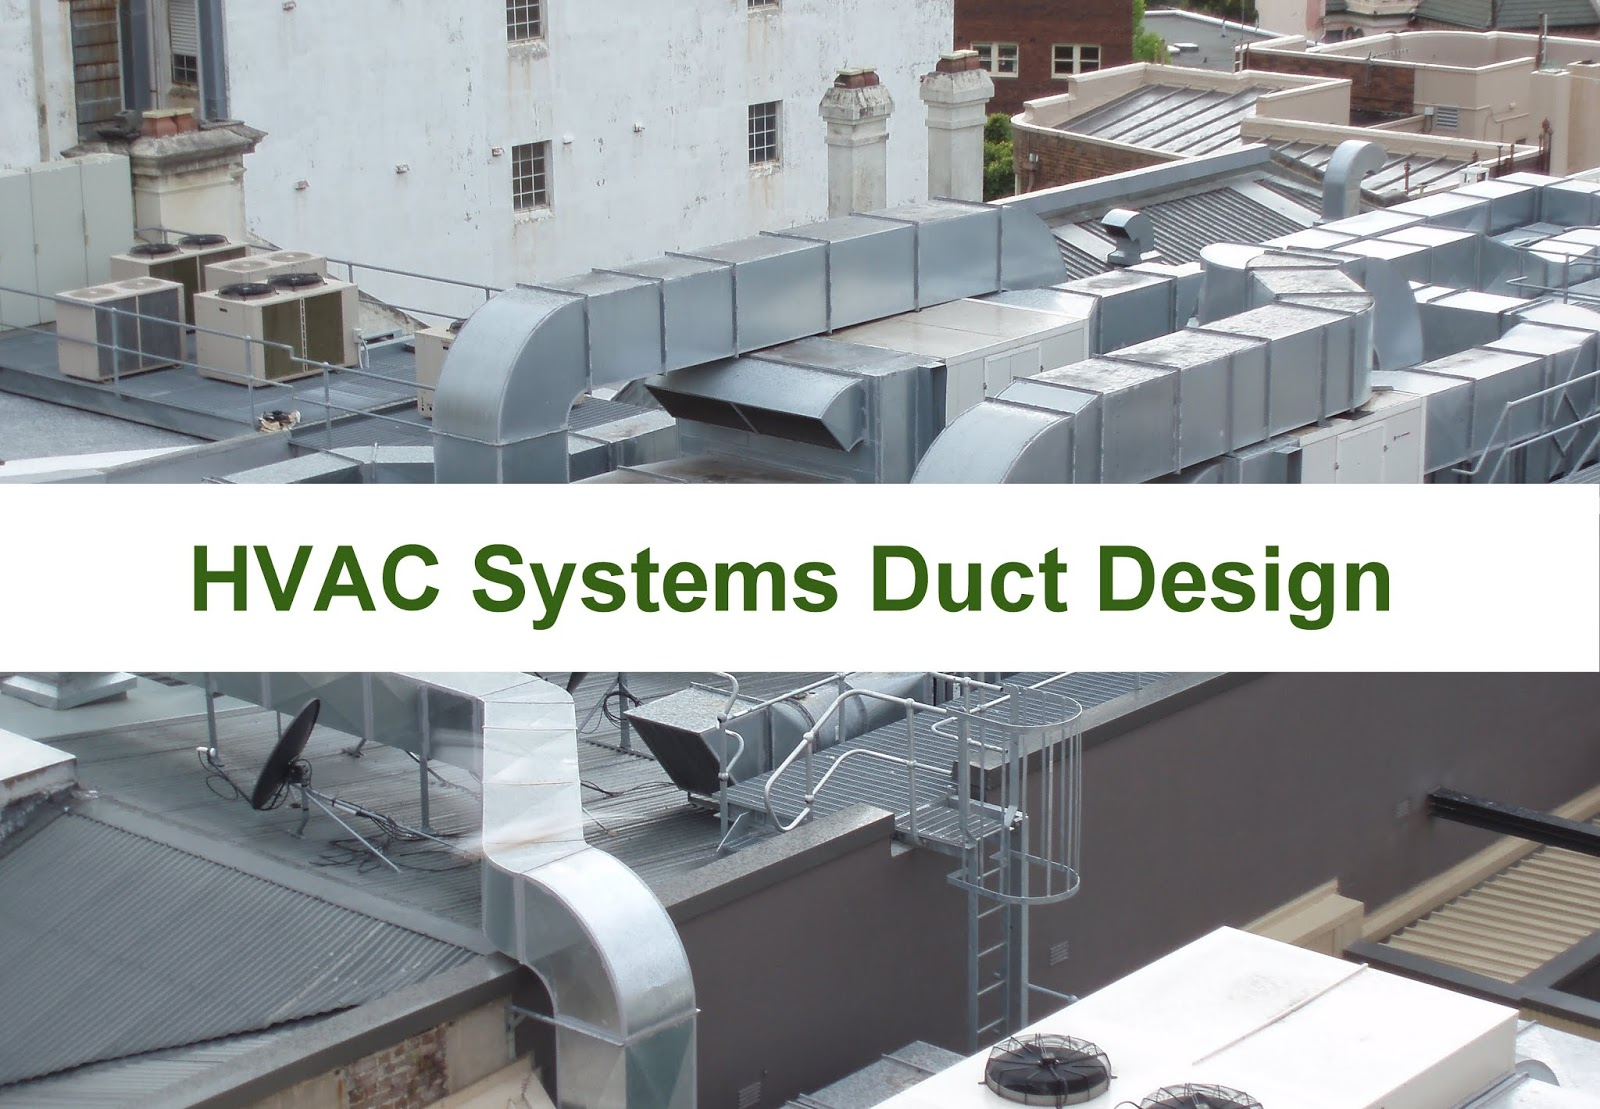 Www Pdfstall Online Hvac Systems Duct Design 3rd Edition Free Pdf